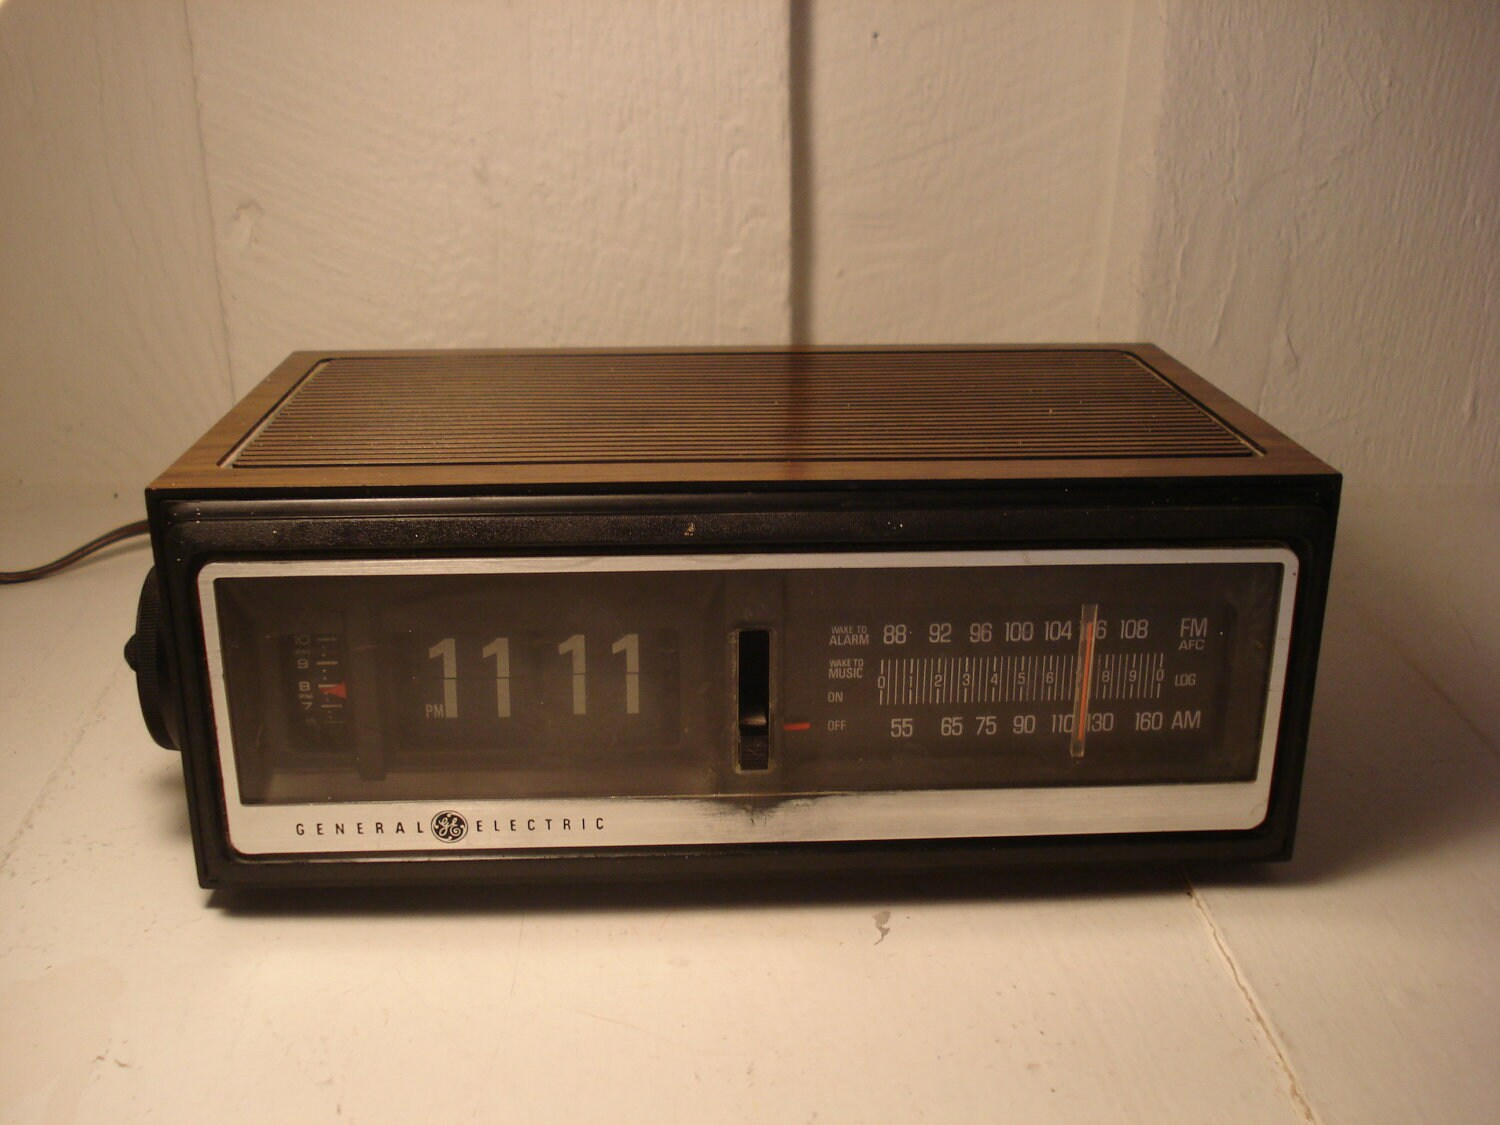 Partially Functioning Flip Clock Radio